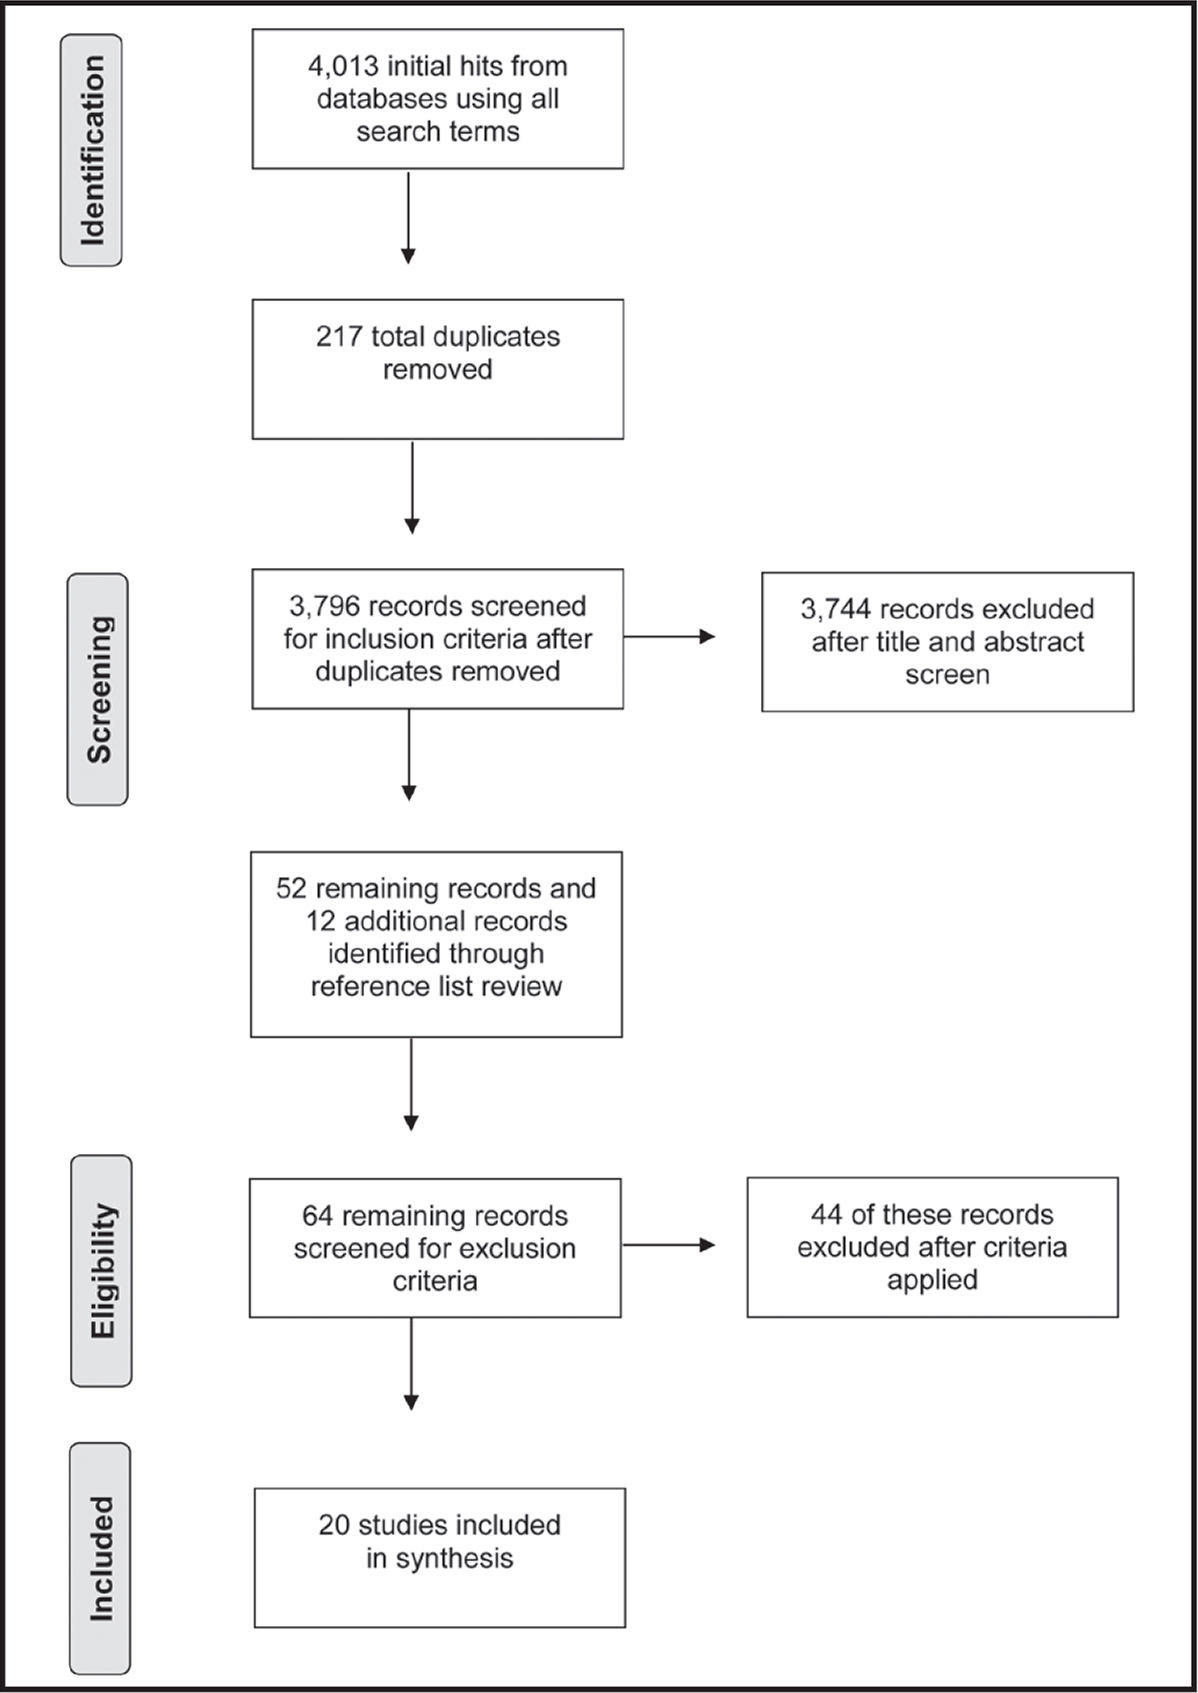 Study selection process following Preferred Reporting Items for Systematic Reviews and Meta-Analyses (PRISMA) guidelines.